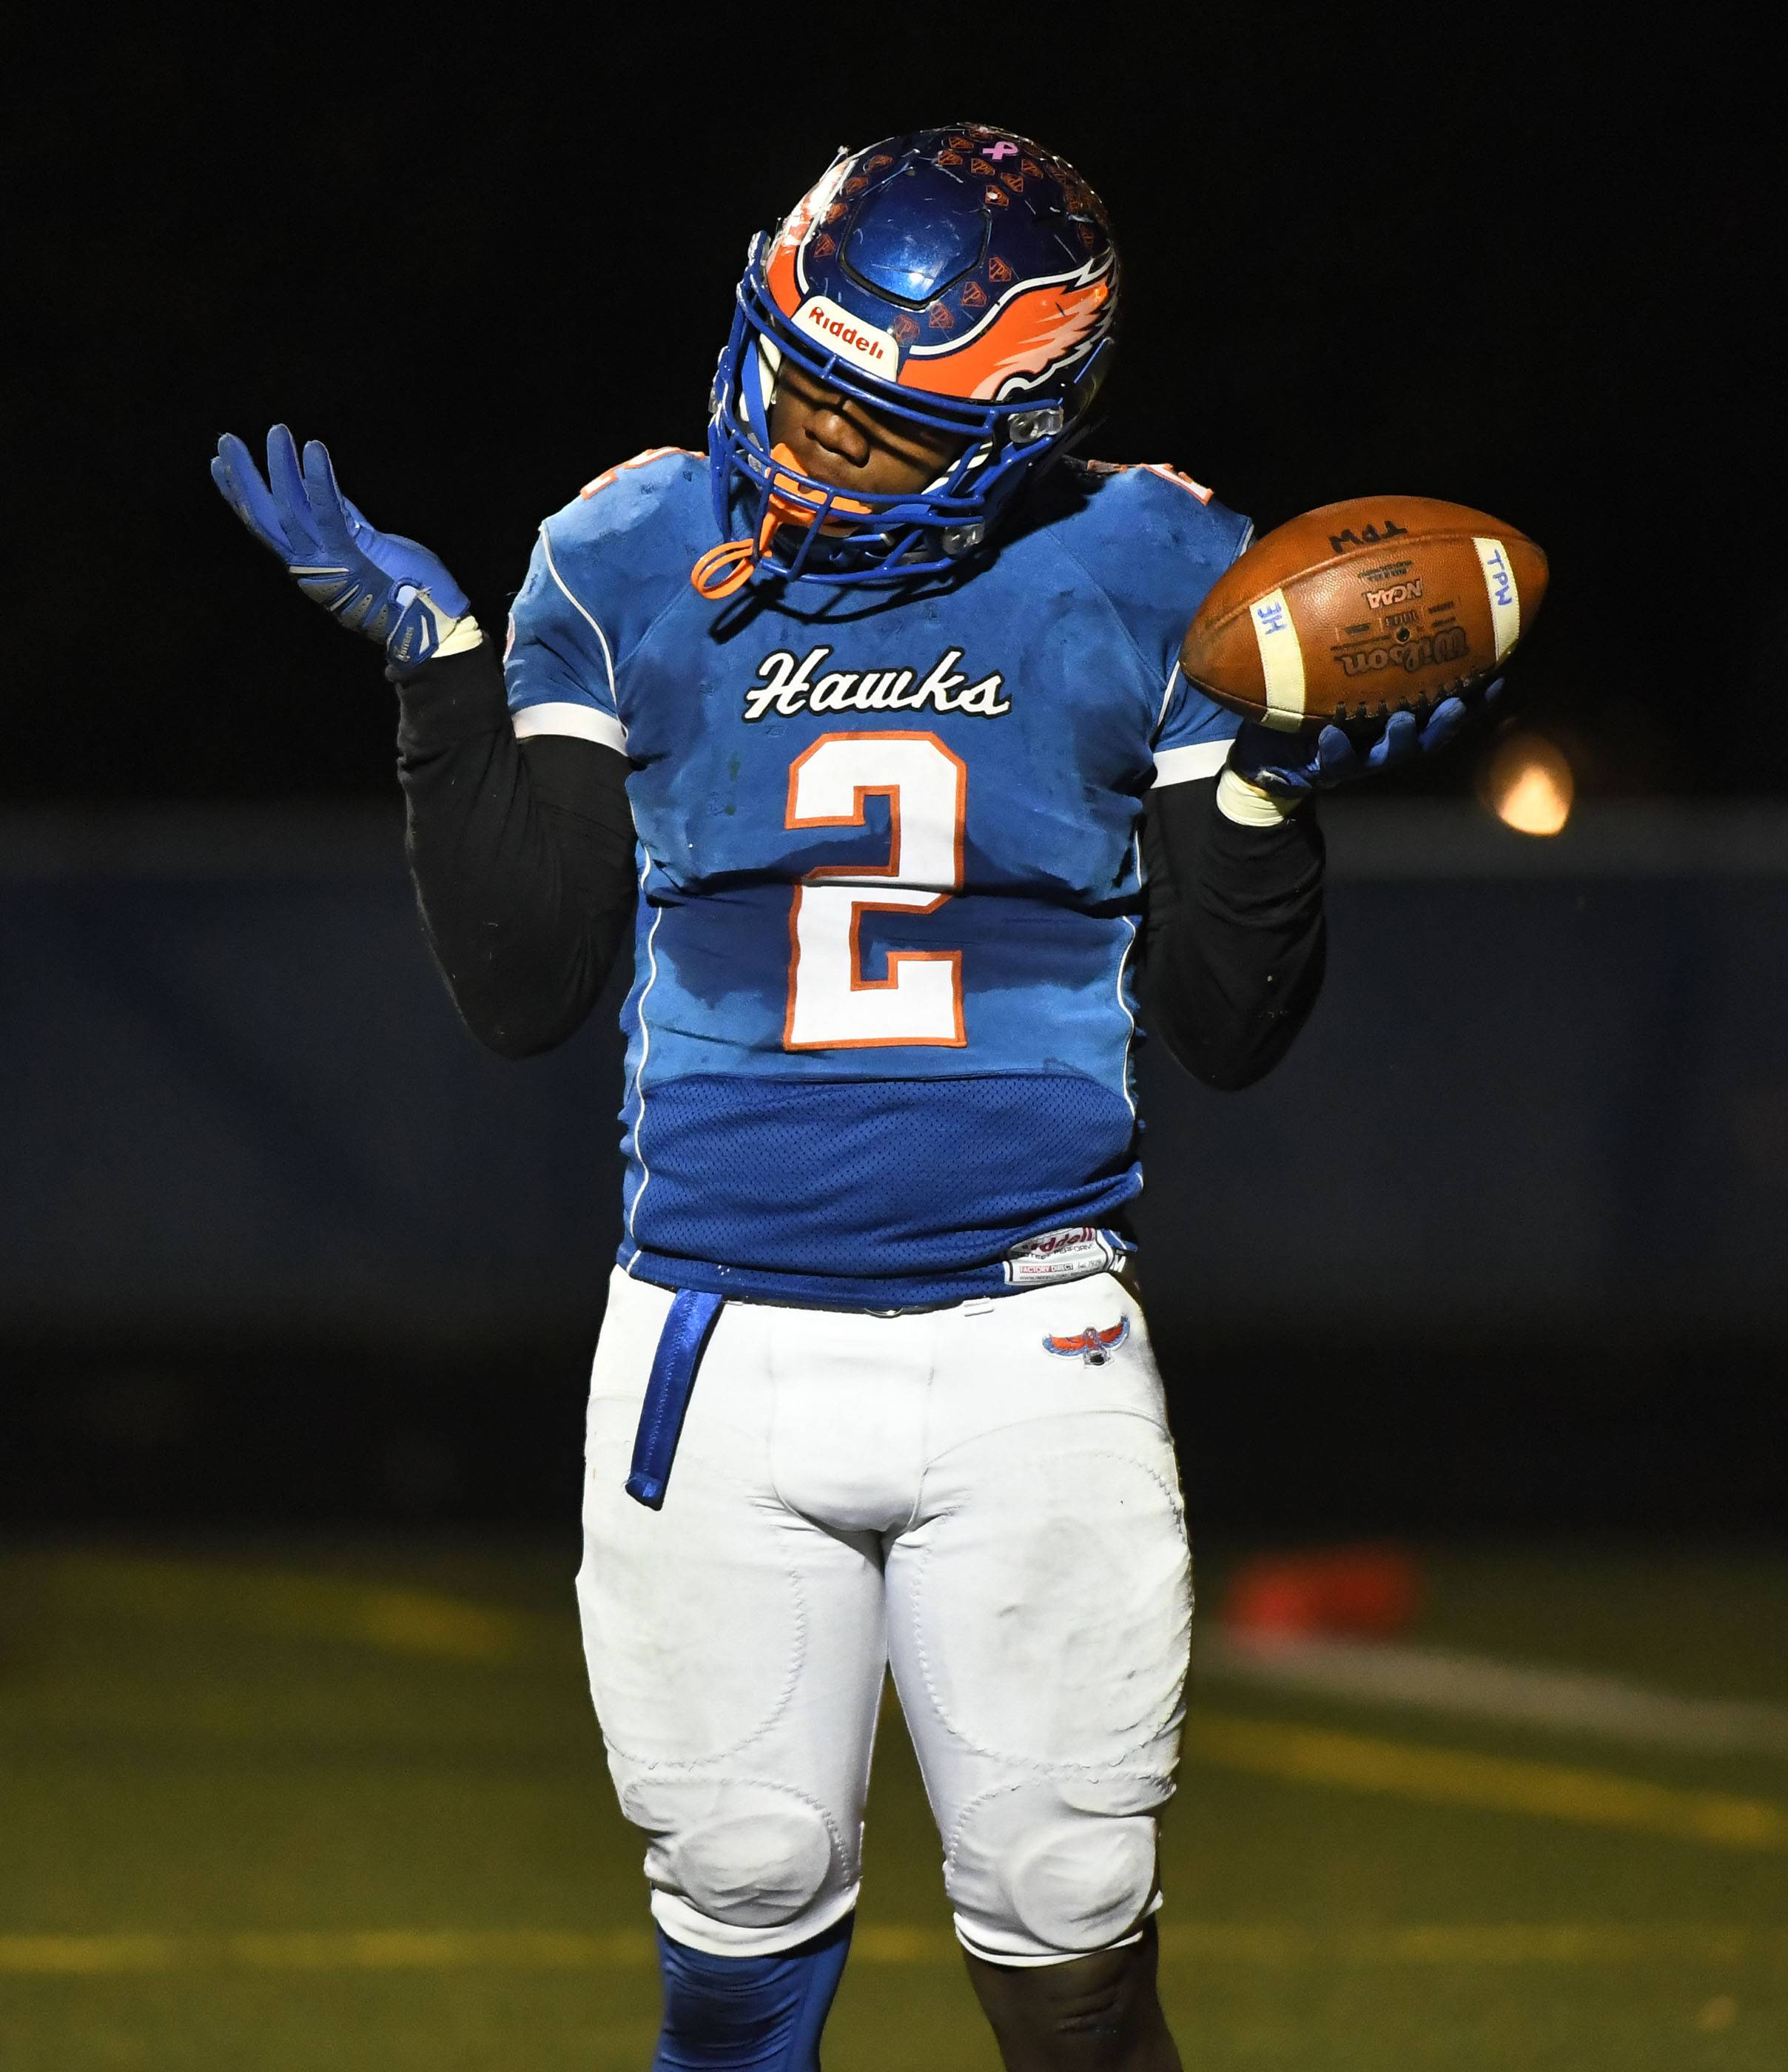 Hoffman Estates' Jaylan Alexander reacts after scoring in the second half against Prairie Ridge in the Class 6A semifinals Saturday at Hoffman Estates.